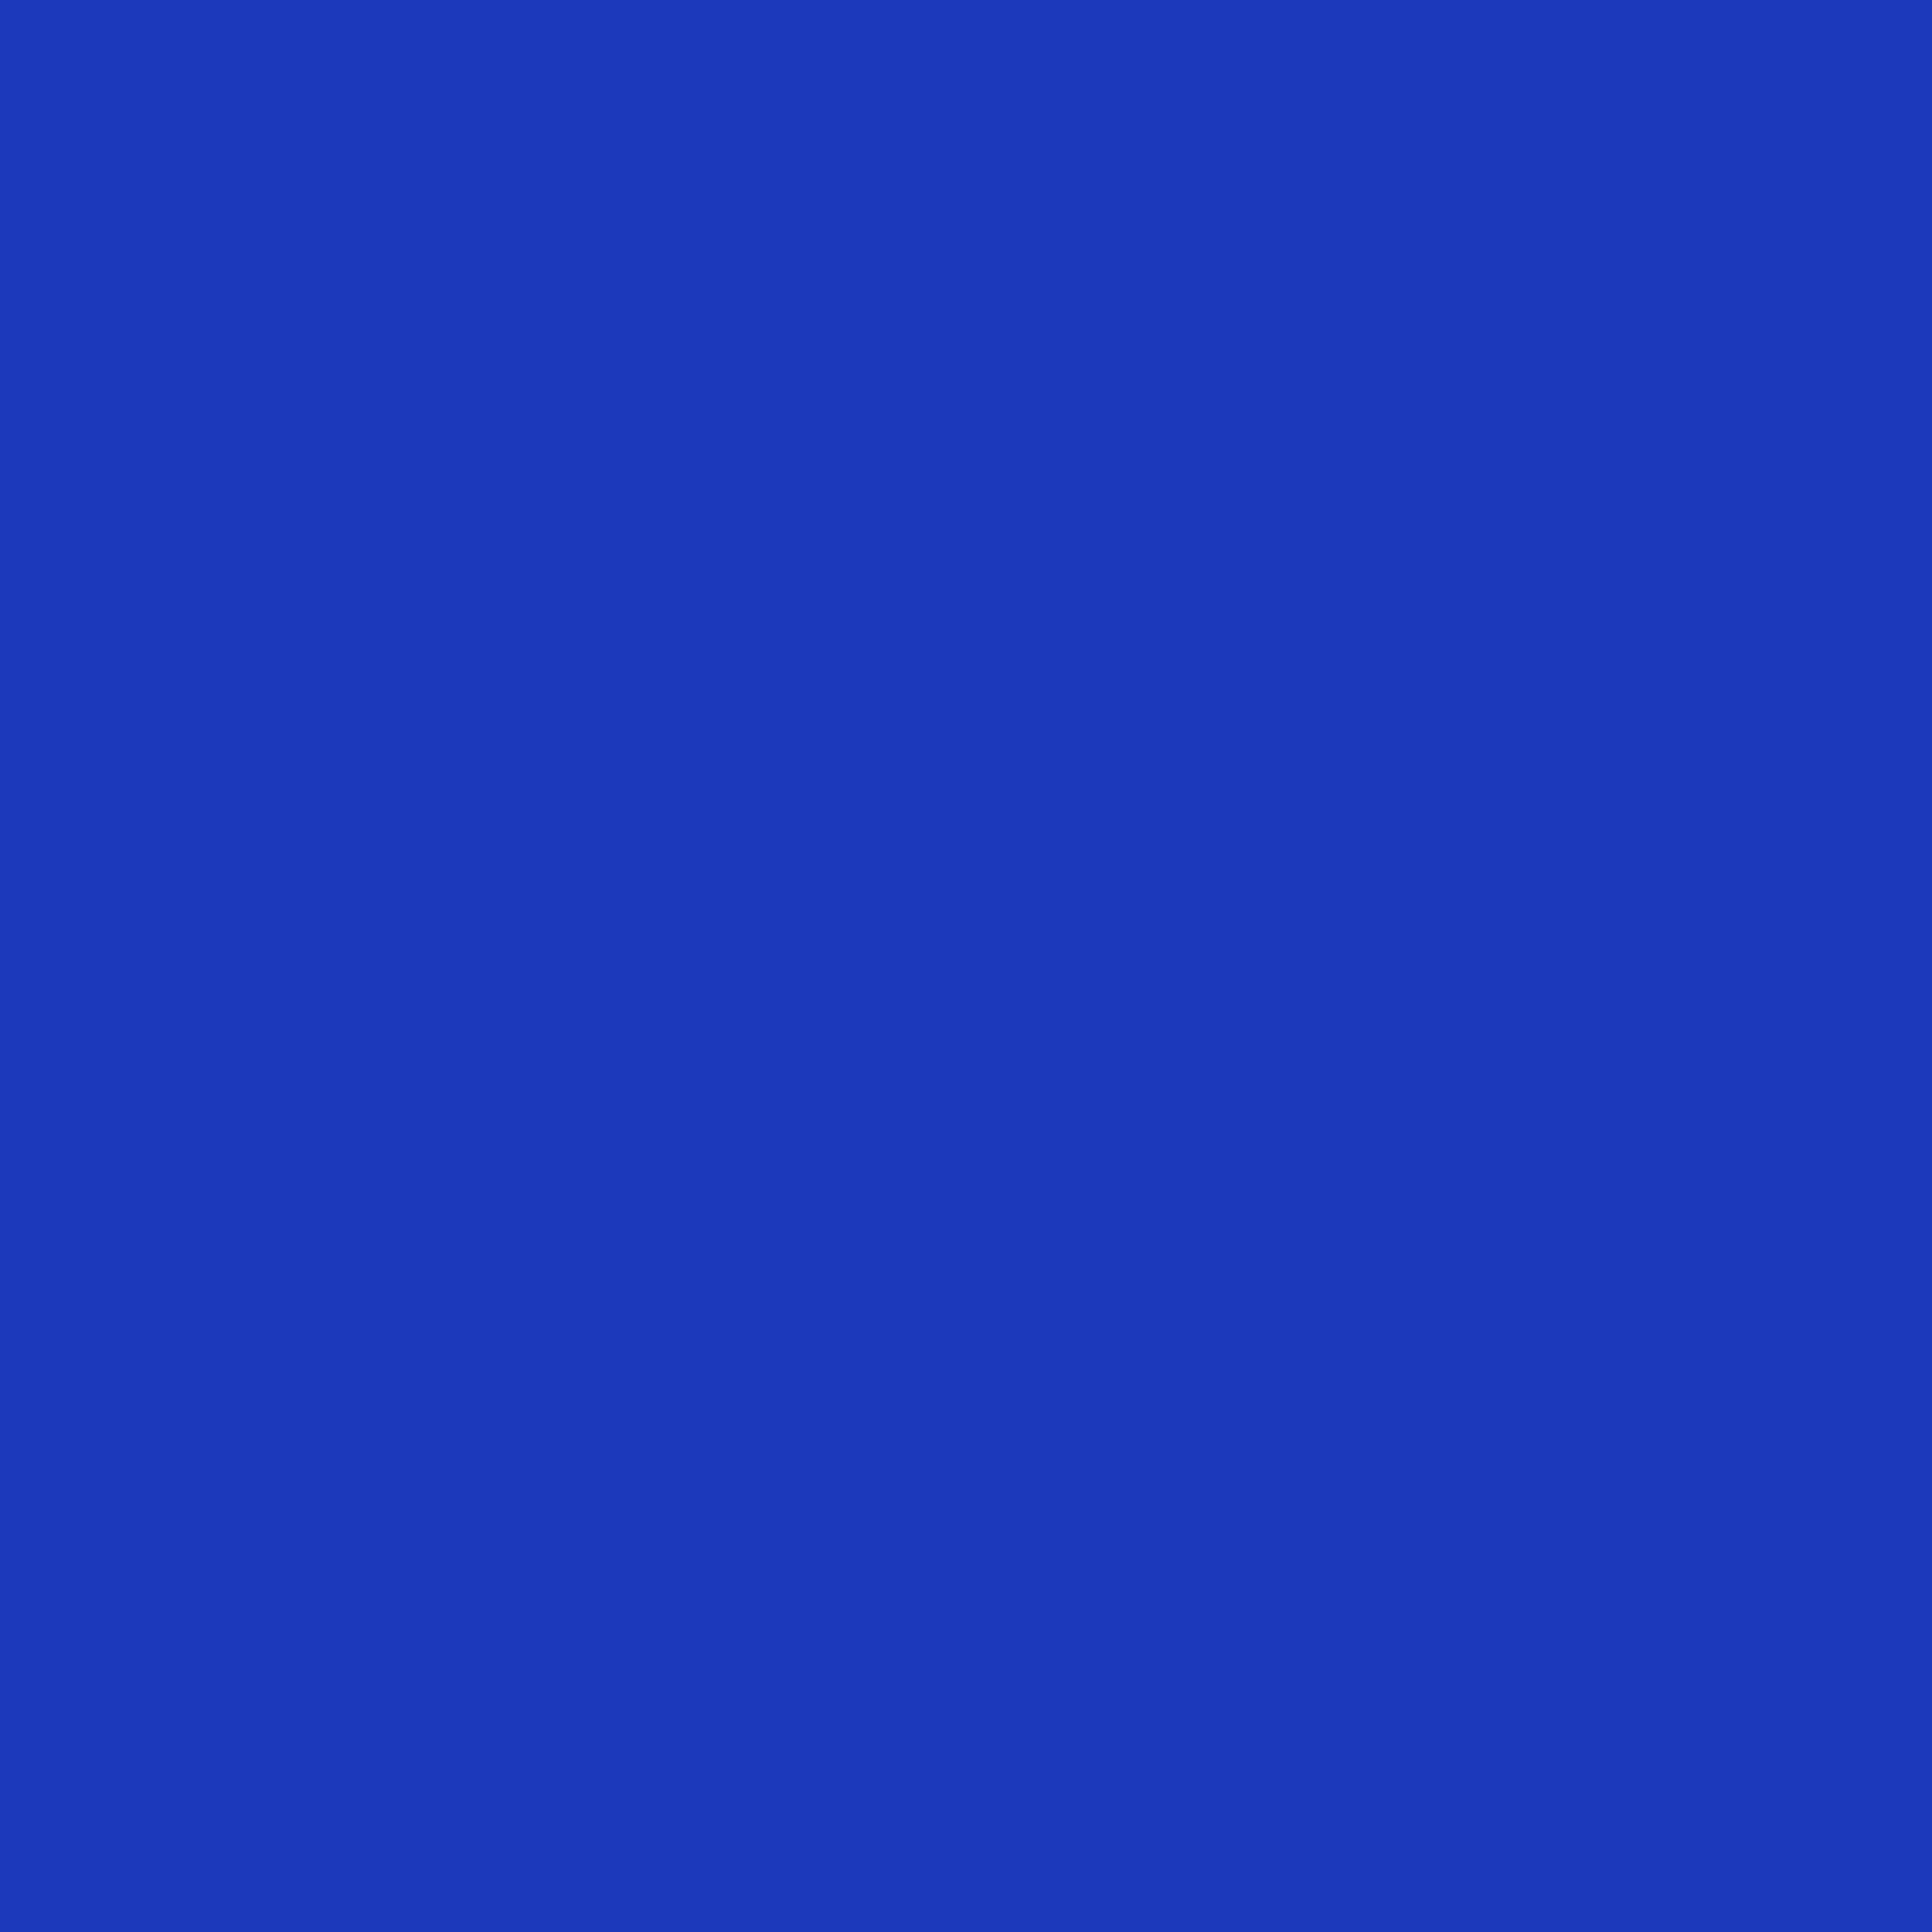 3600x3600 Persian Blue Solid Color Background